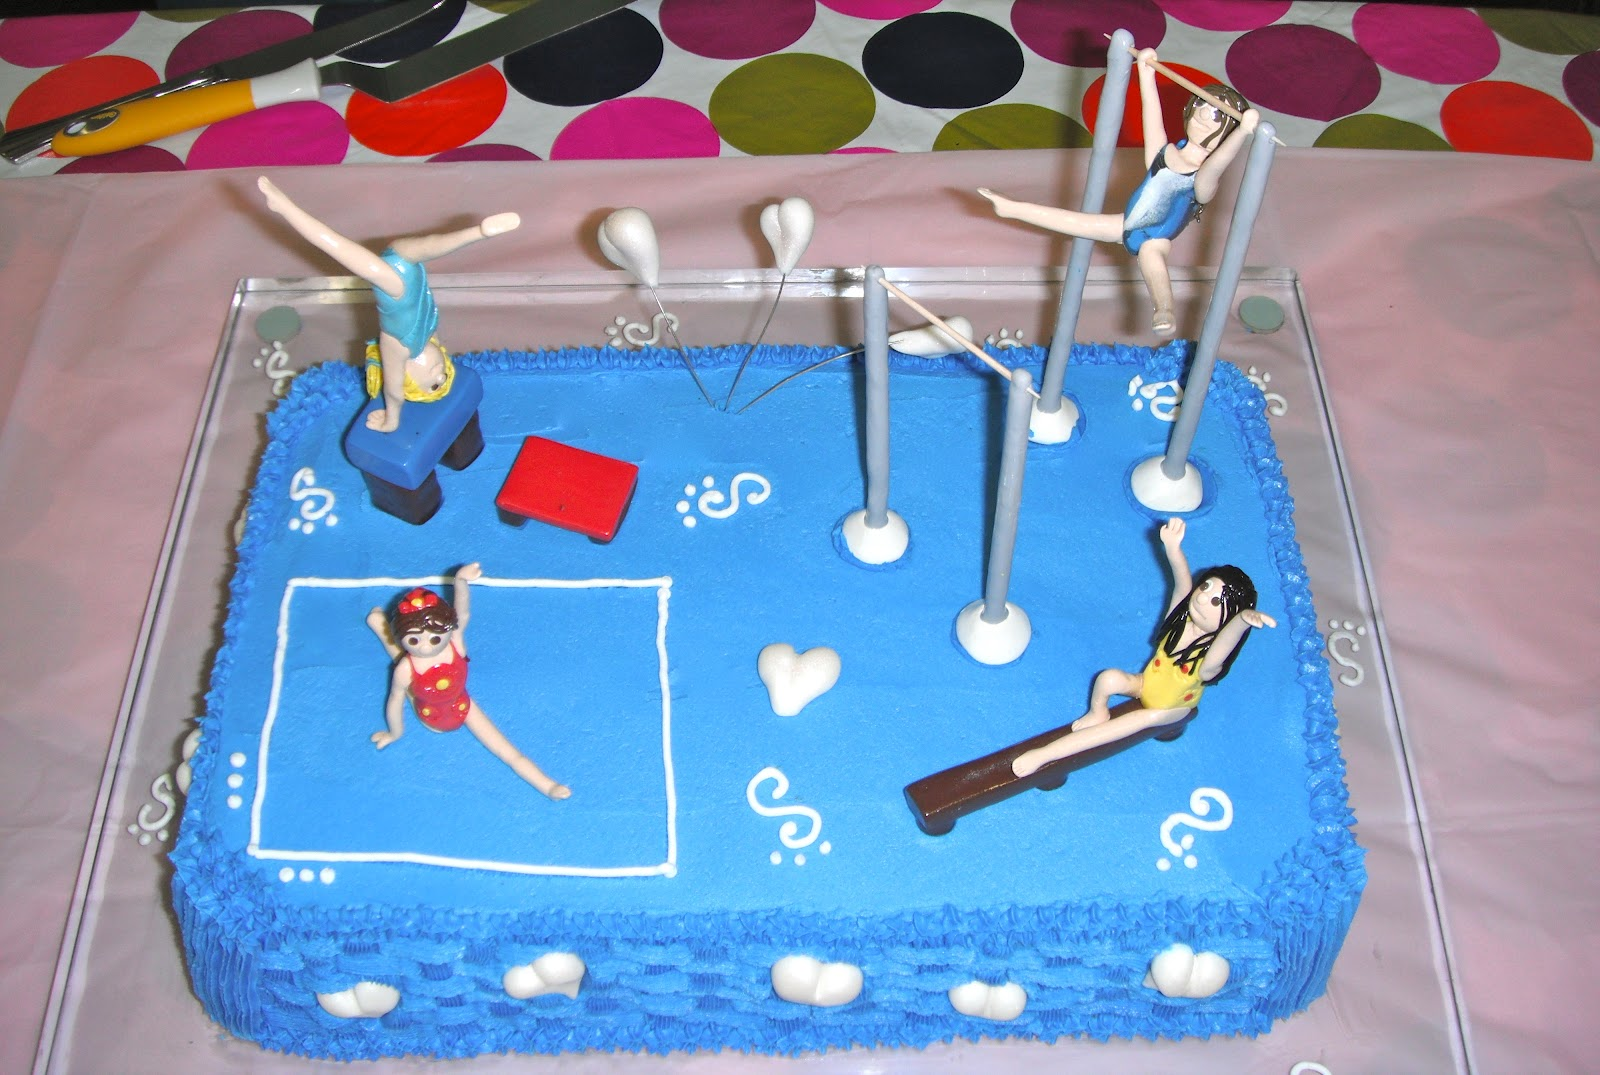 How To Make A Gymnastics Cake P Art Y